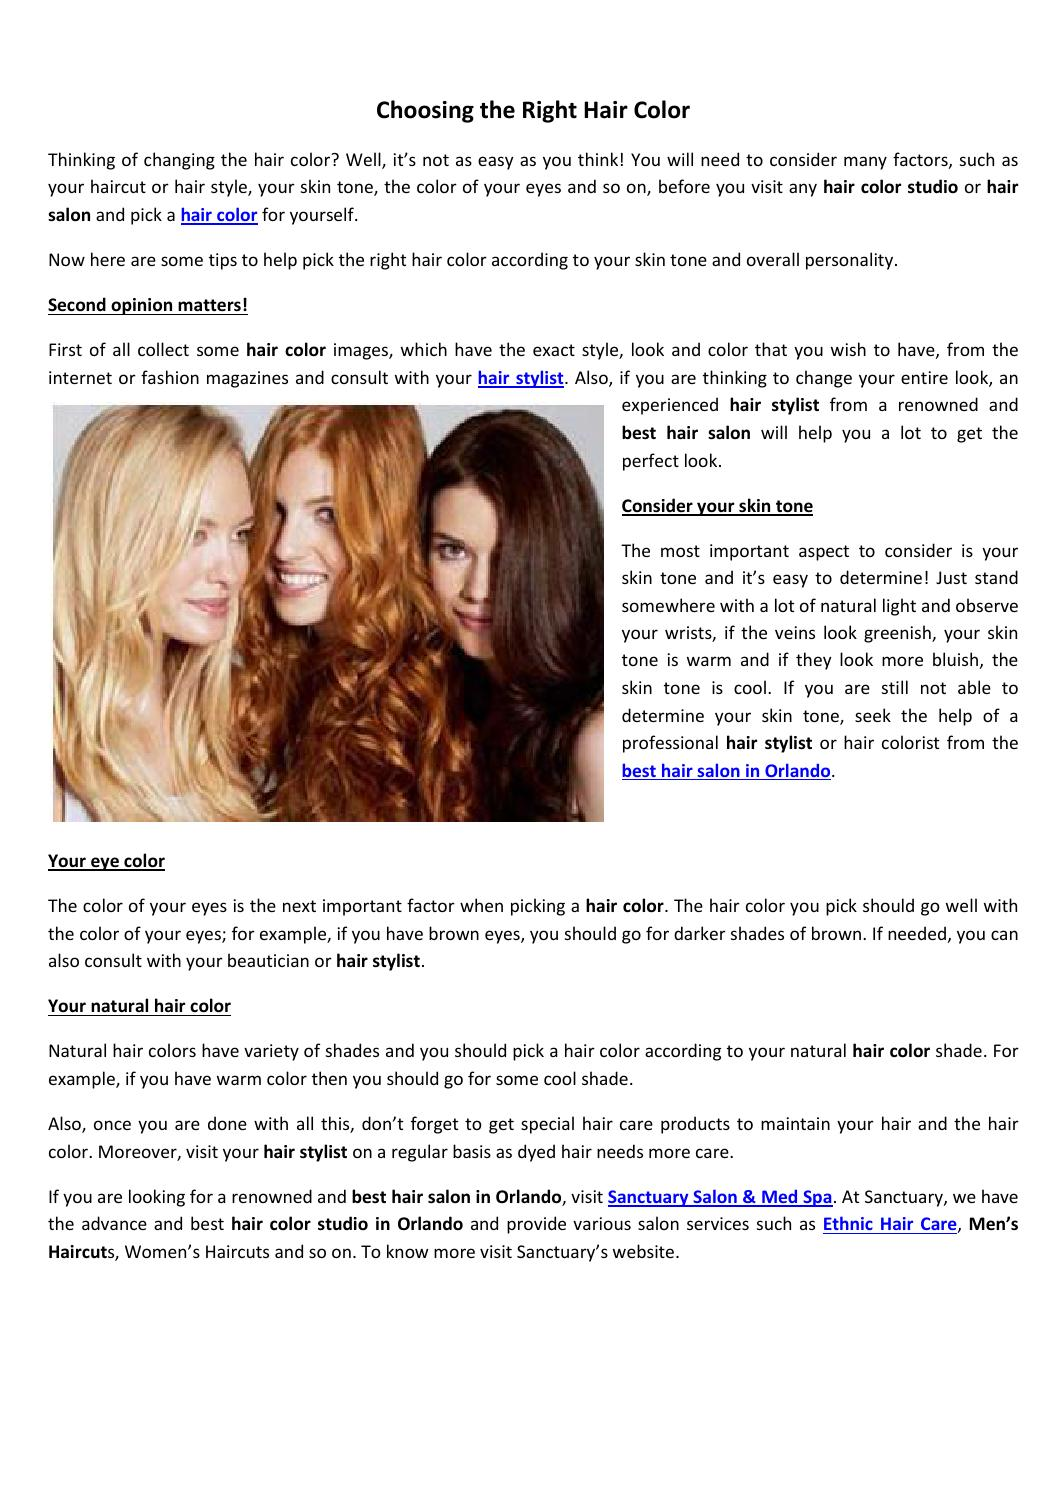 Choosing The Right Hair Color By Sanctuarysalondayspa Issuu